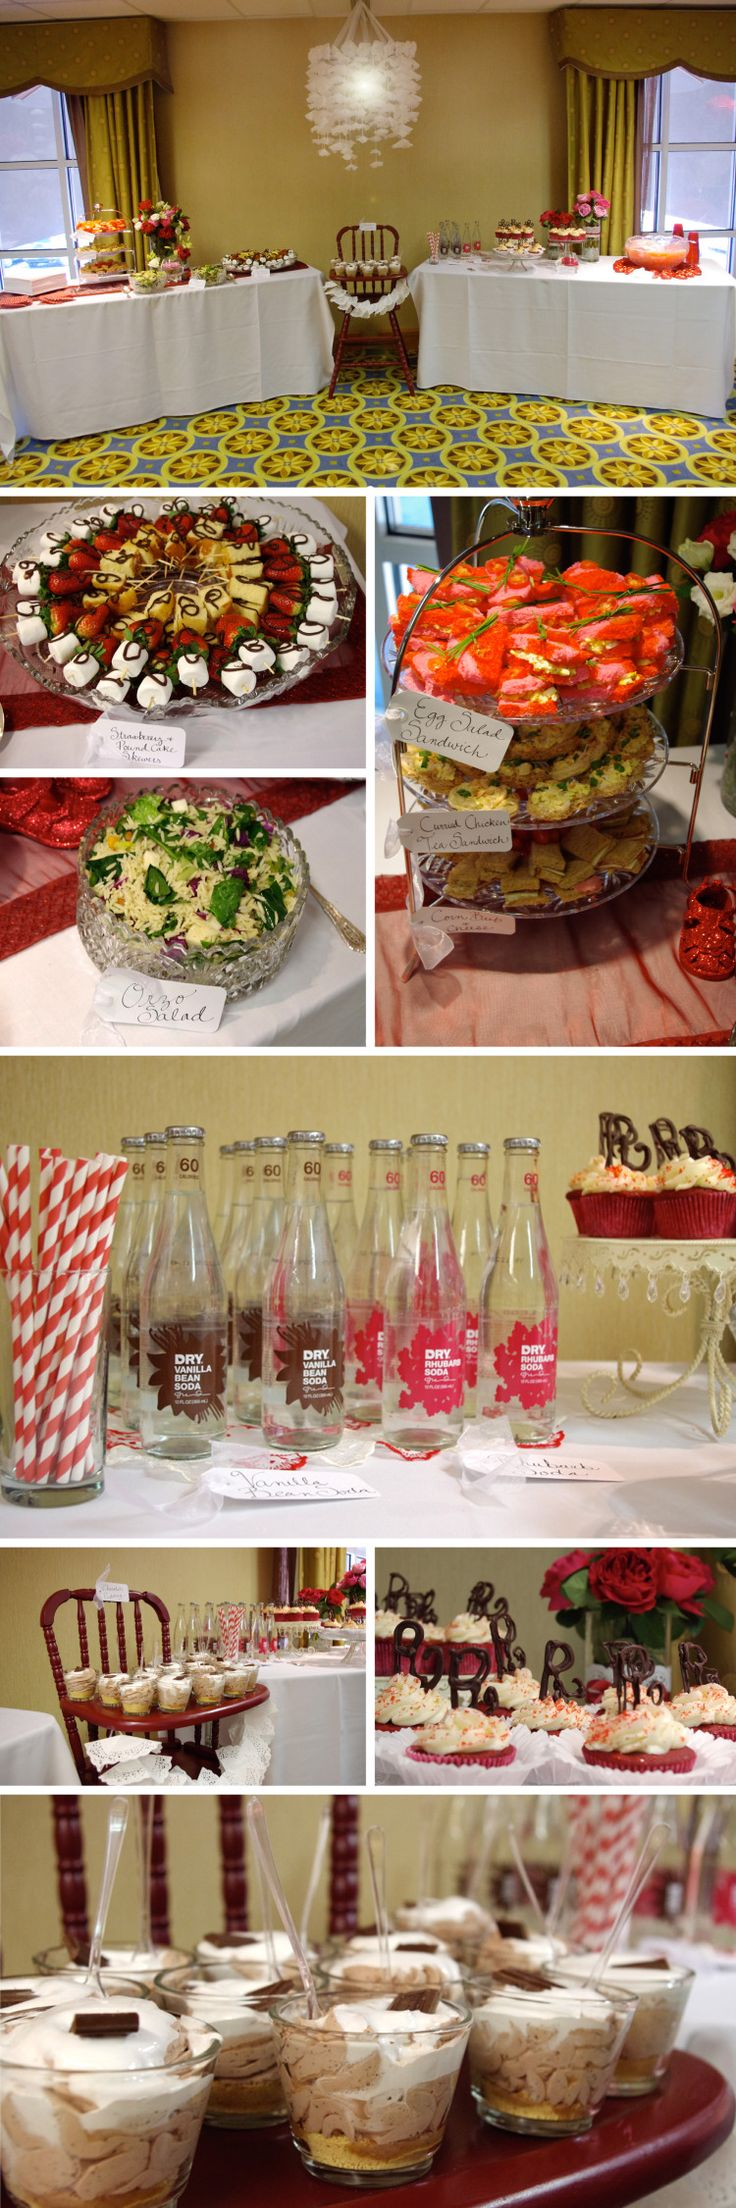 Baby Shower Food Tablescape - Fruit marshmallow and poundcake skewers